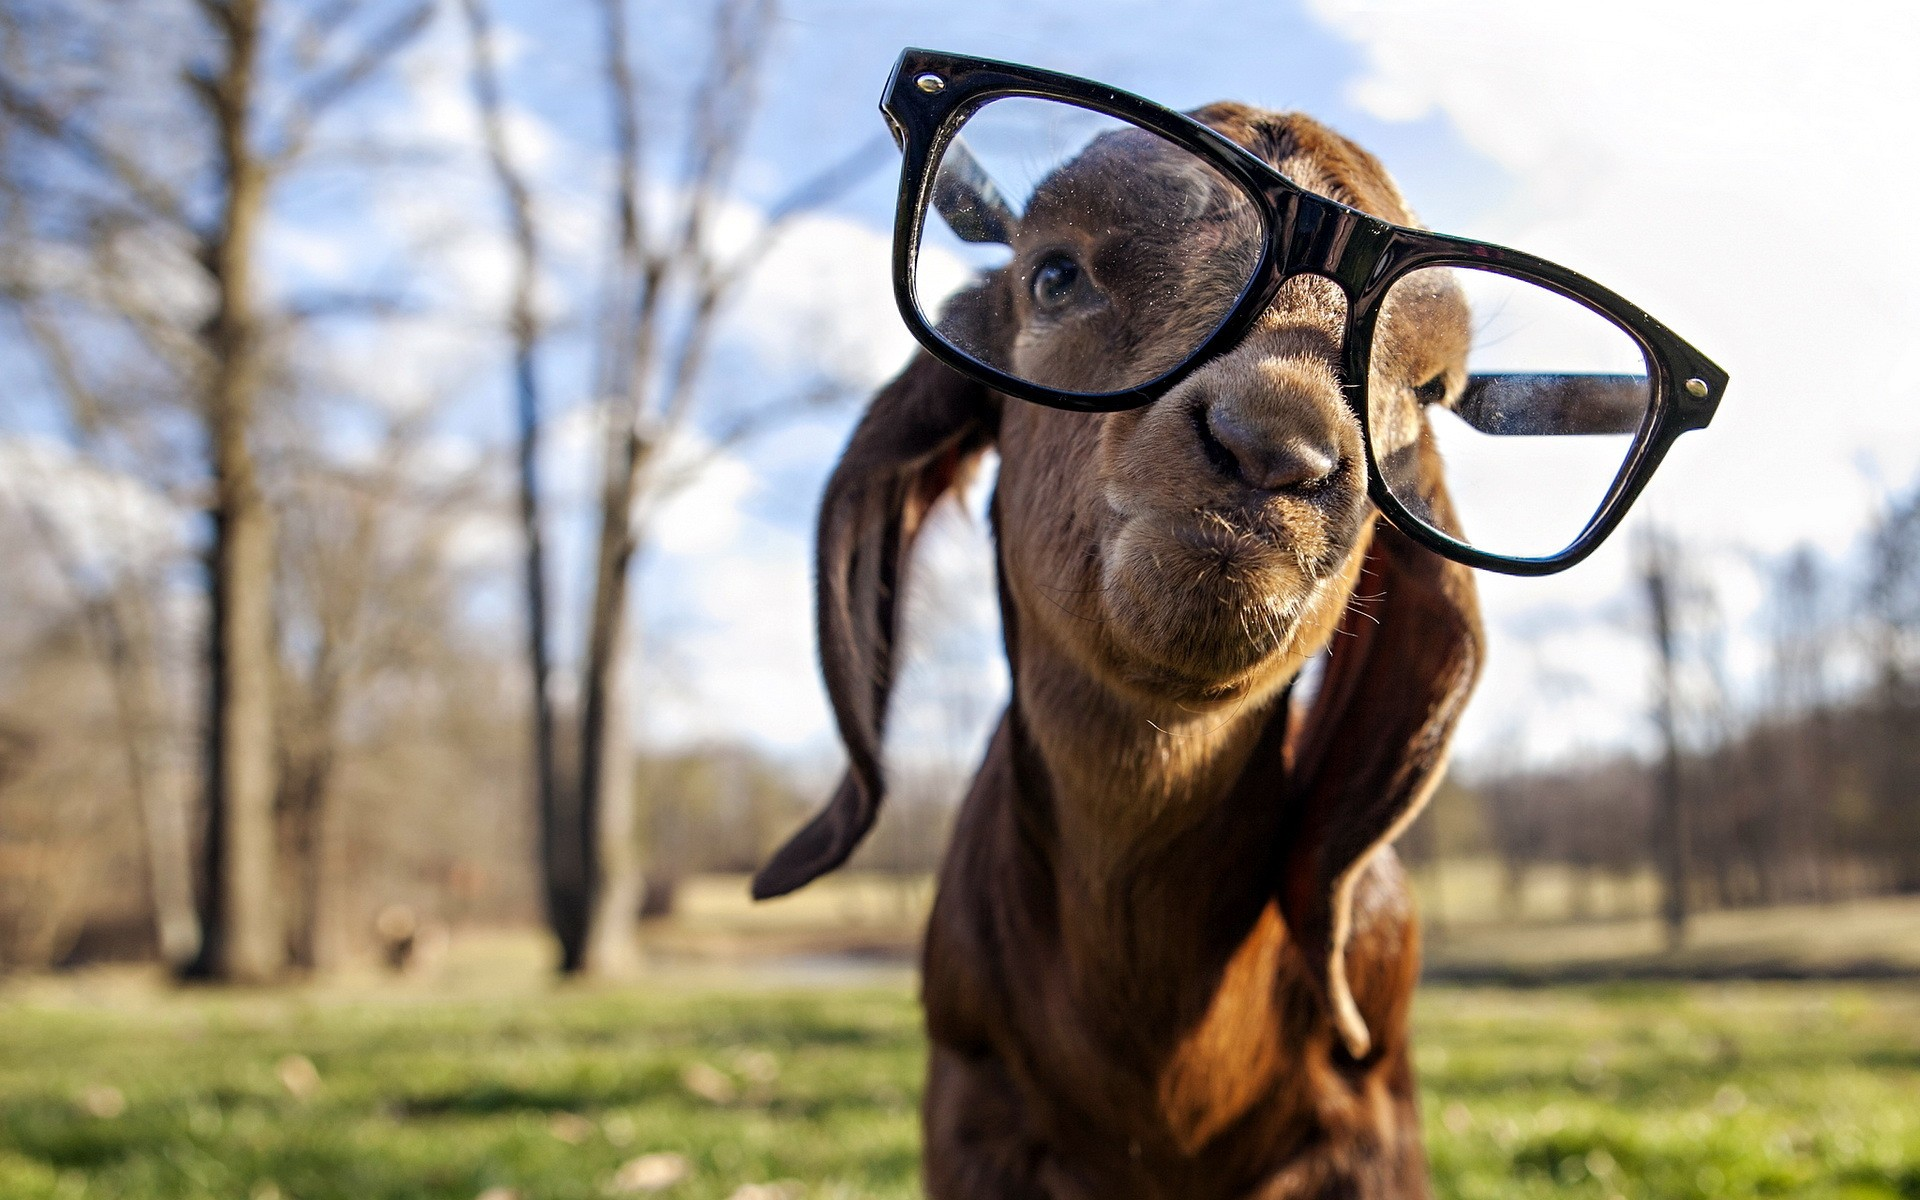 Goat got swag hd funny 4k wallpapers images backgrounds photos goat got swag sciox Gallery